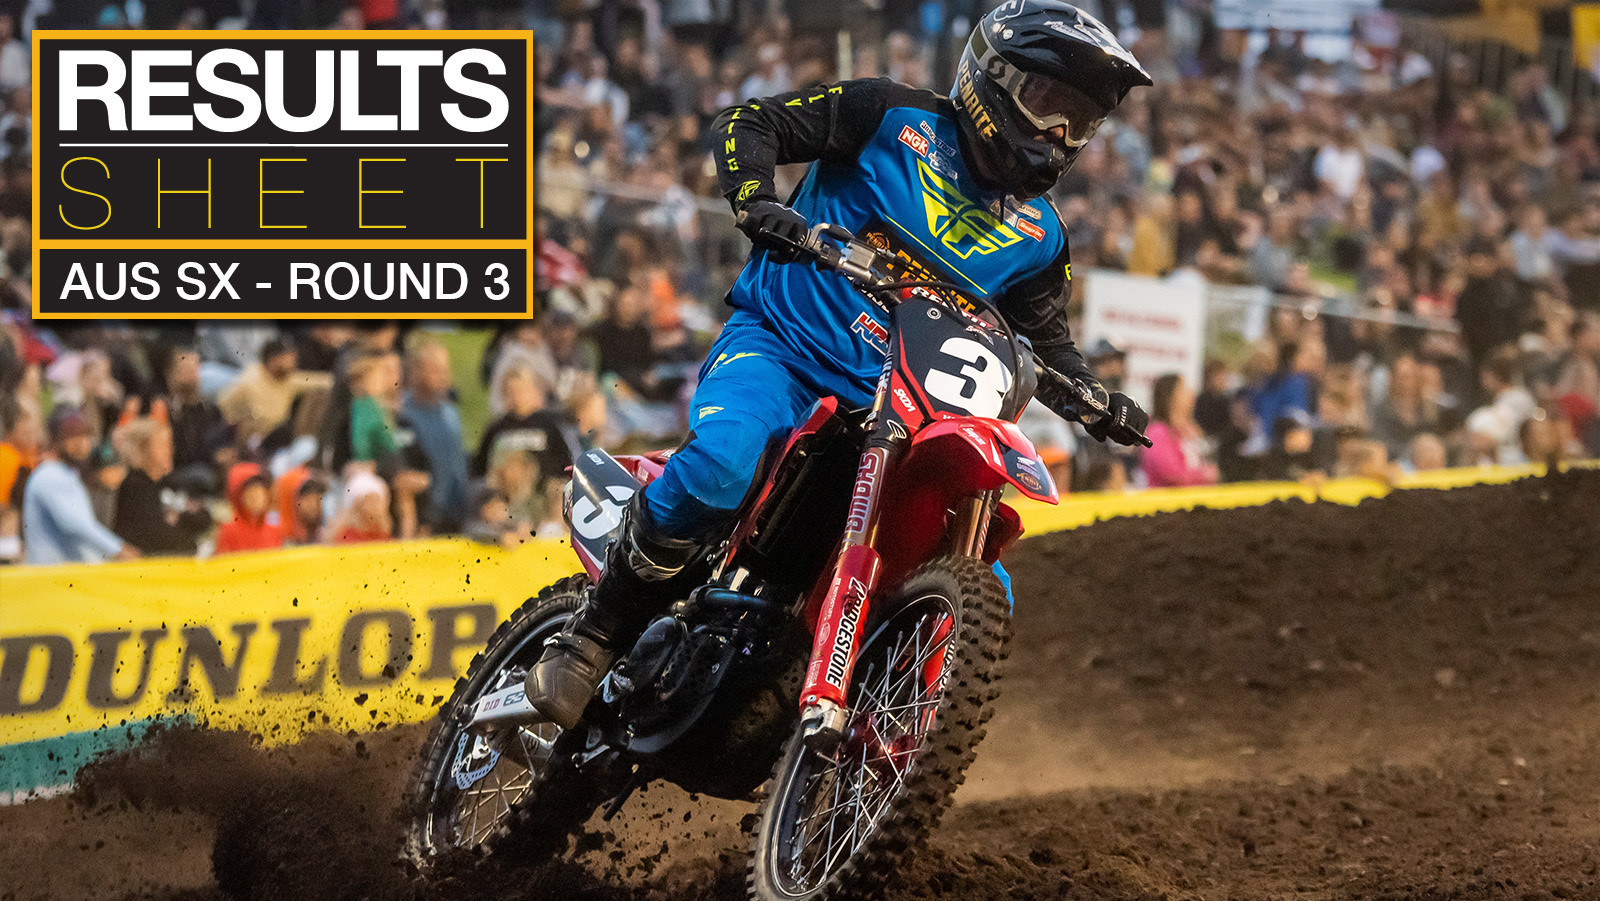 Results Sheet: 2019 Australian Supercross Championship - Round 3